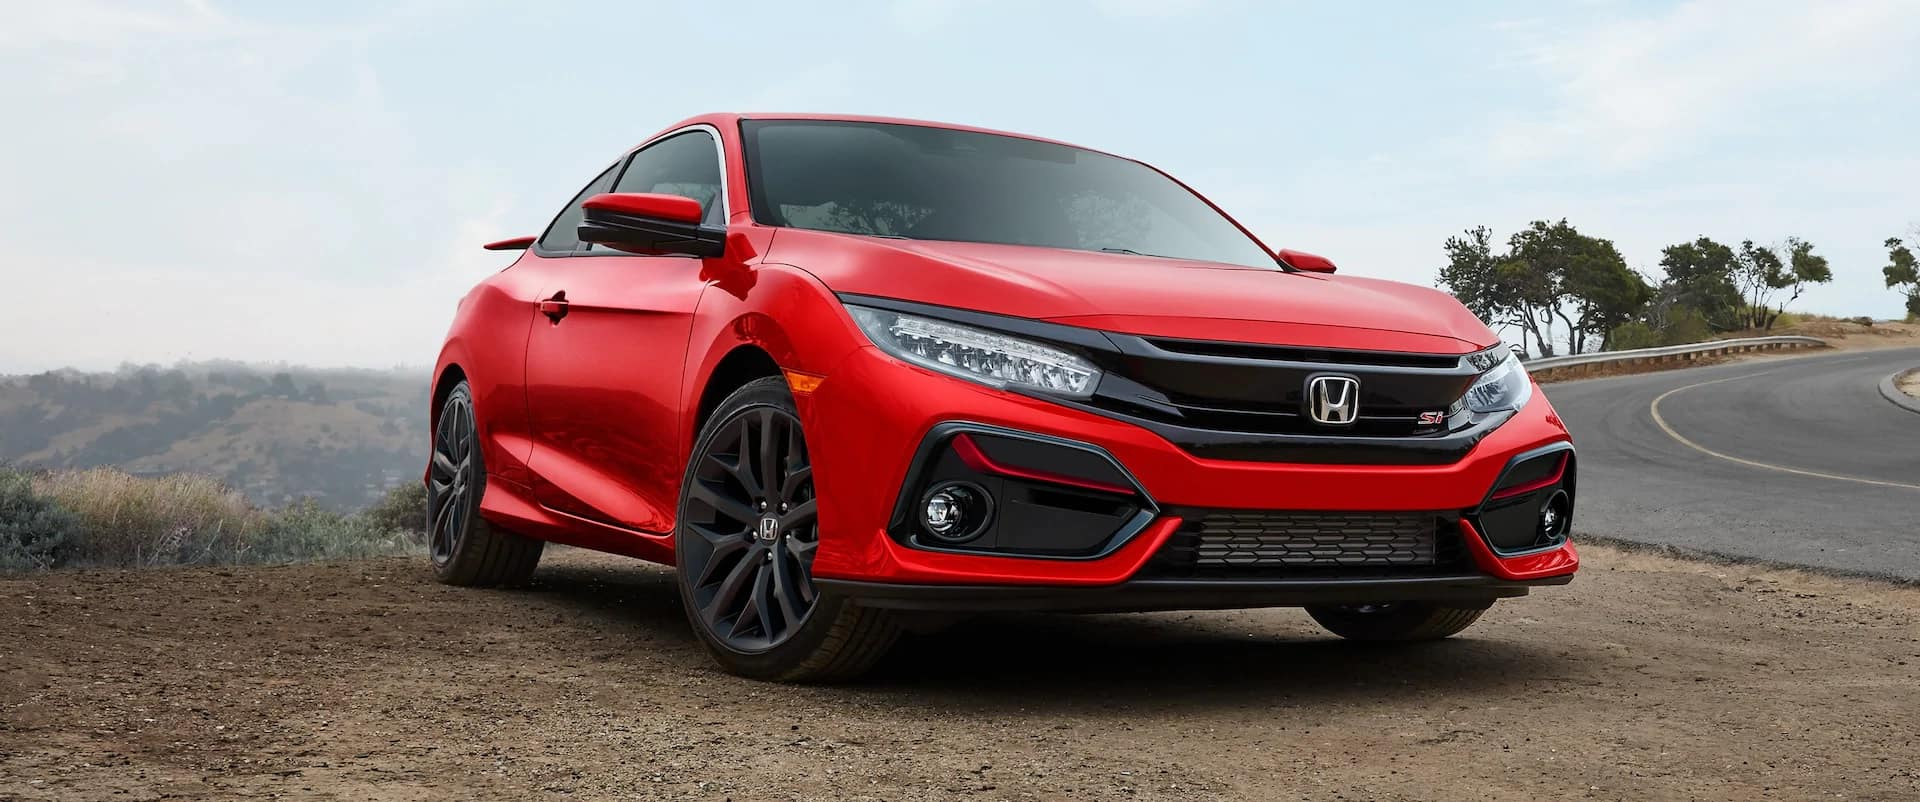 Honda_Civic_Si_Red_Driving_Country_Road